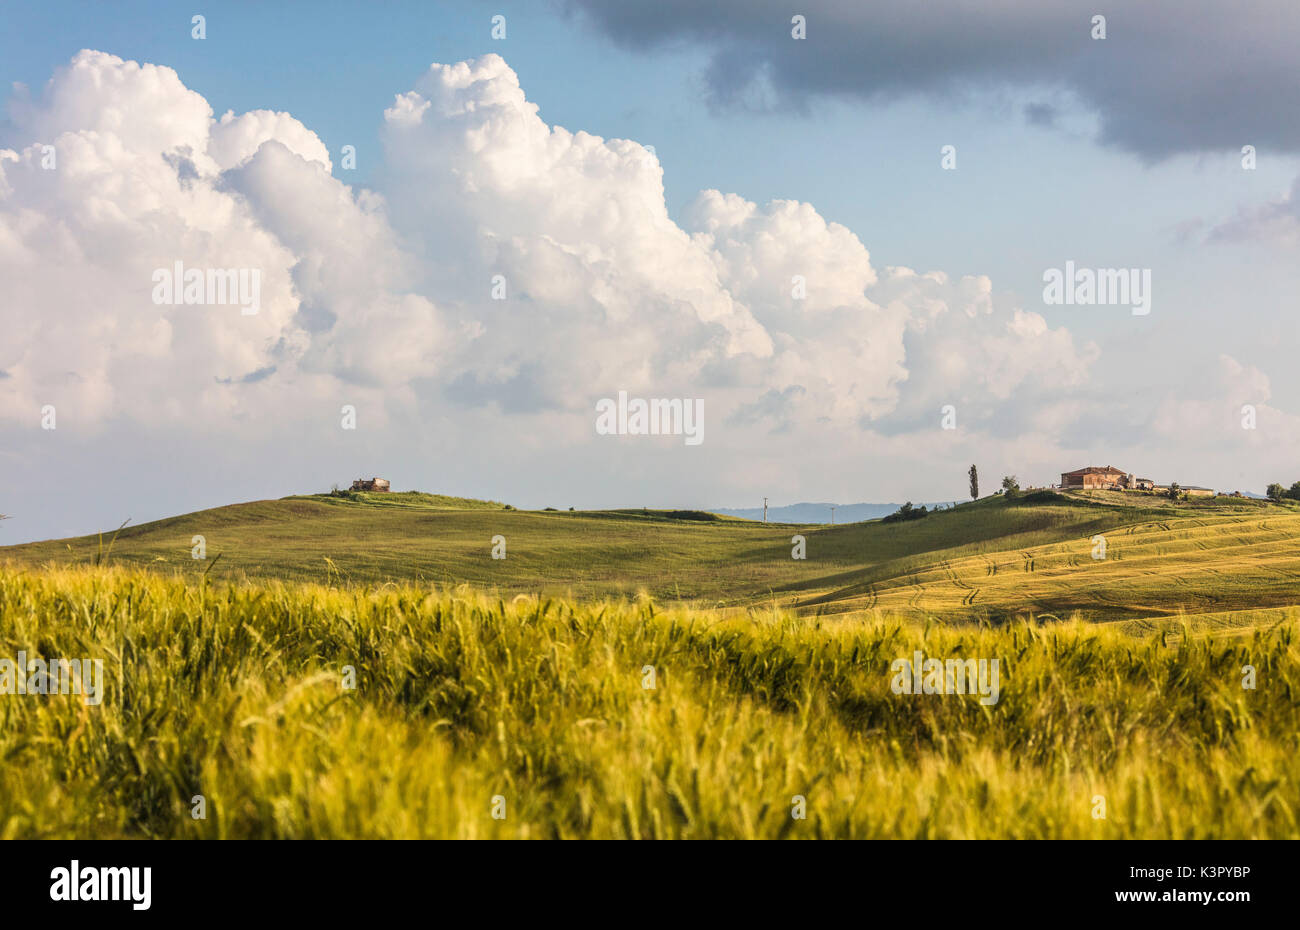 Ears of corn frame the green rolling hills and farm houses Crete Senesi (Senese Clays) province of Siena Tuscany Italy Europe - Stock Image